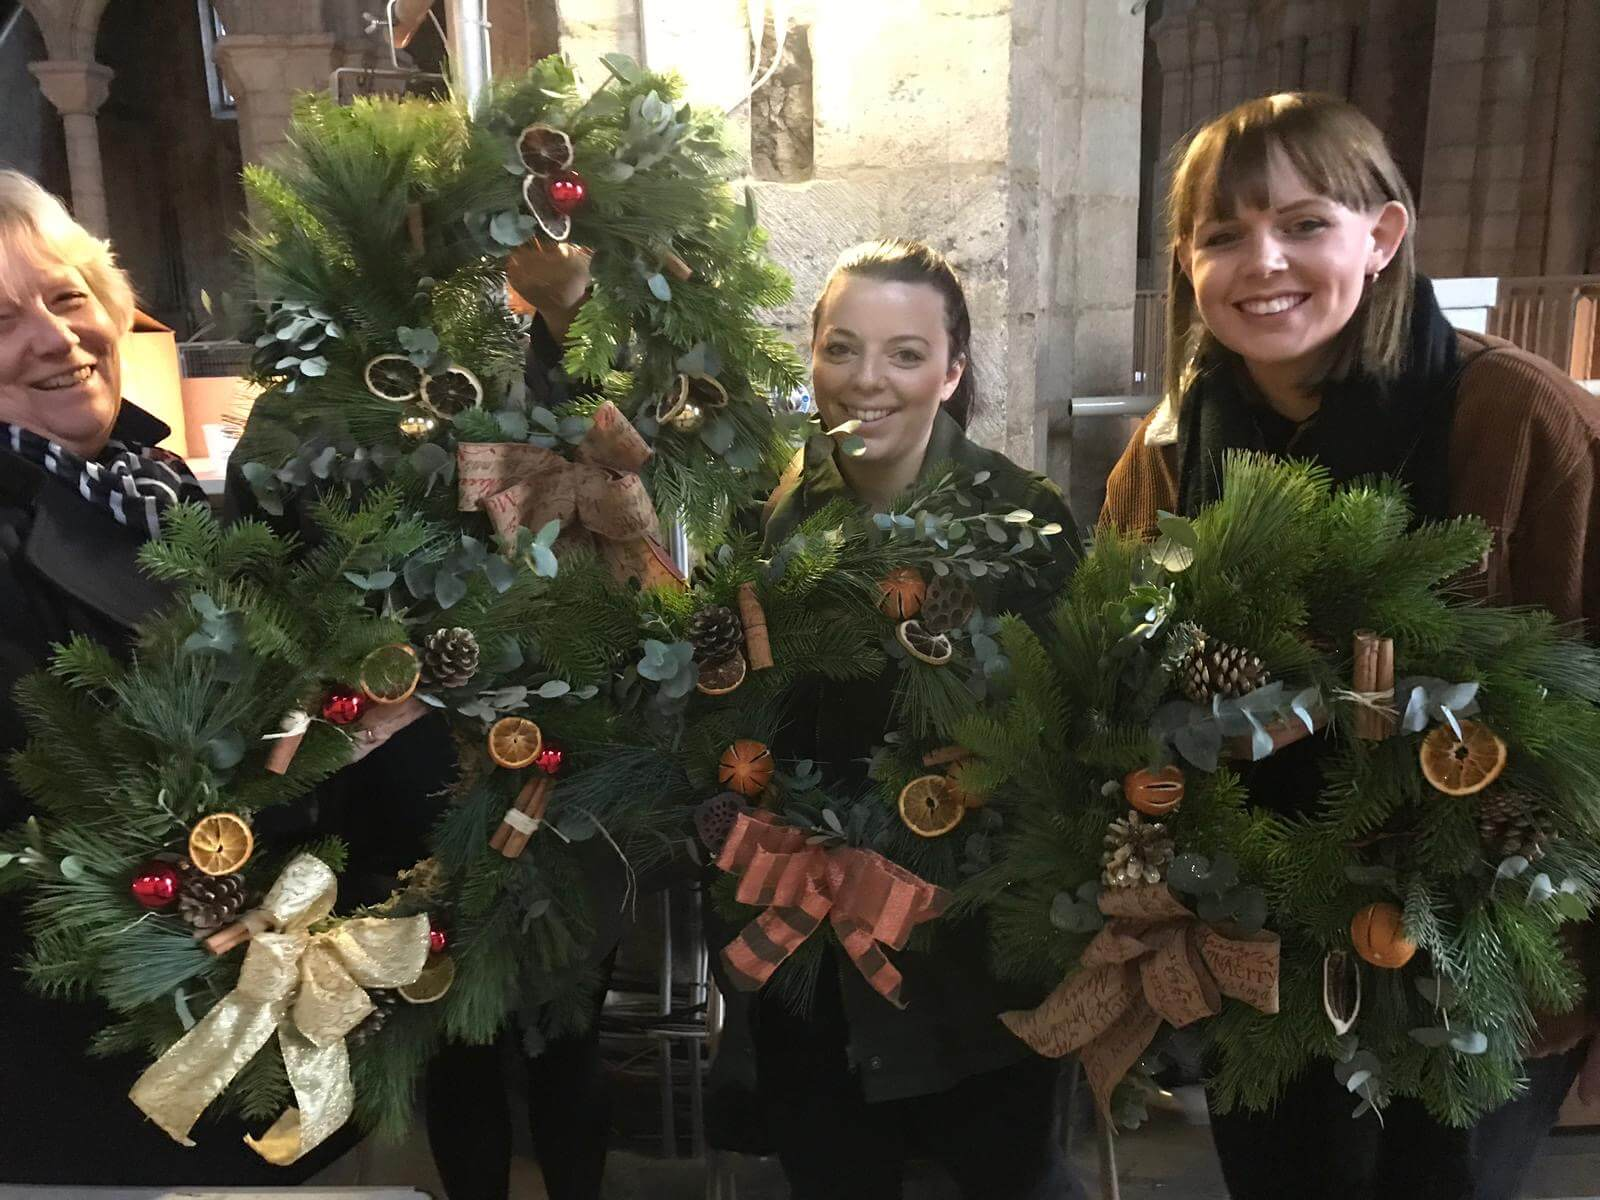 Christmas Wreath Making Workshop Ely Cambridgeshire 2nd December (9).jpg